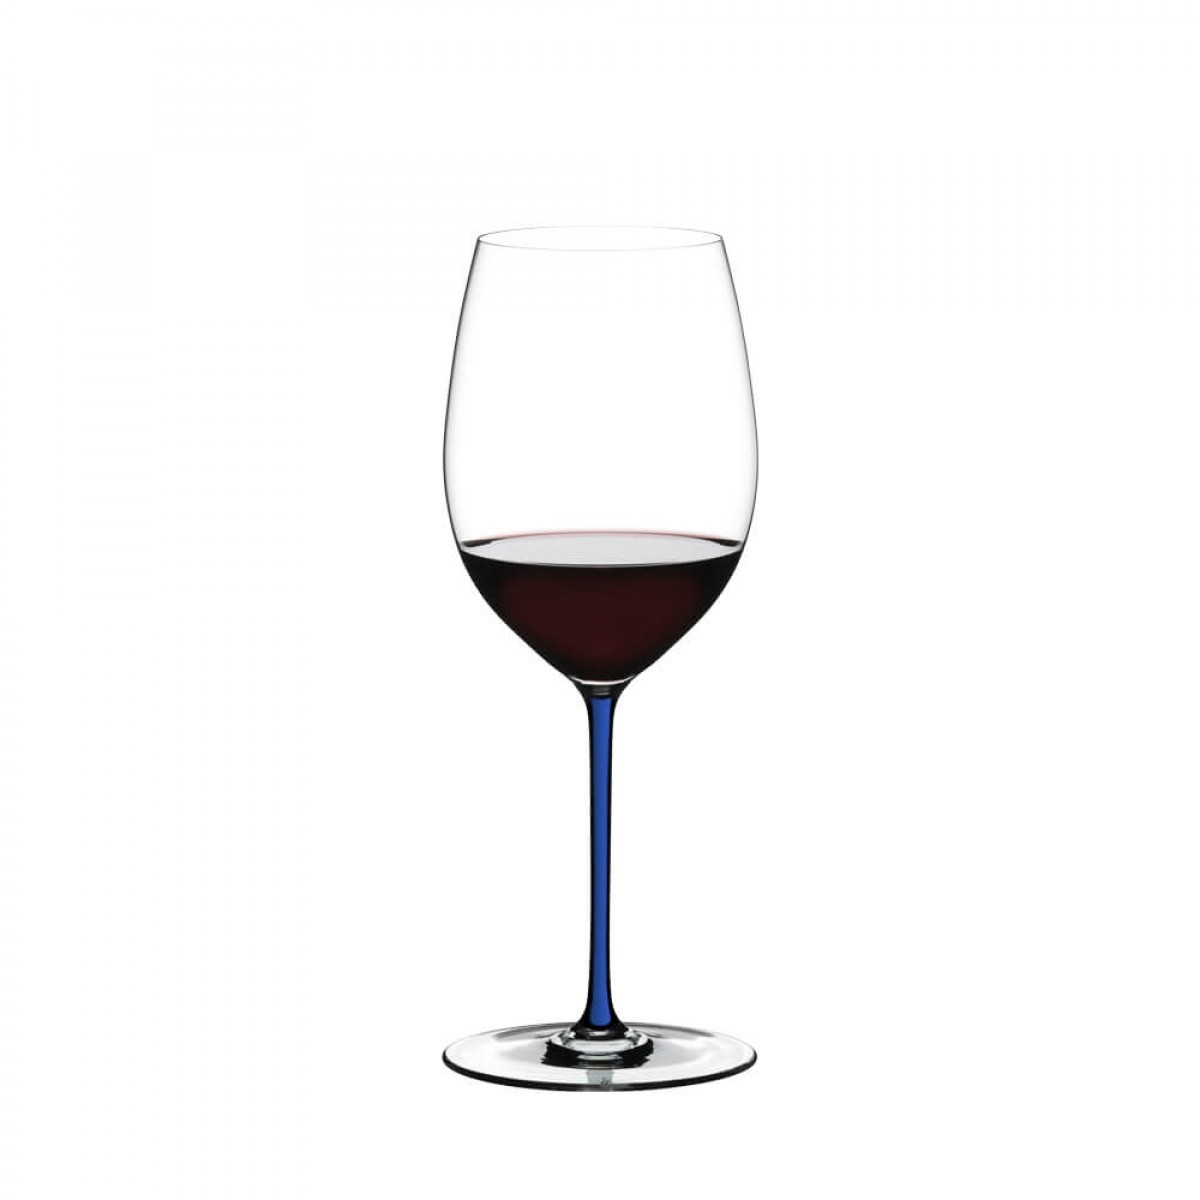 blue and white vase of fatto a mano cabernet dark blue 4900 0d fatto a mano series with regard to fatto a mano cabernet dark blue 4900 0d